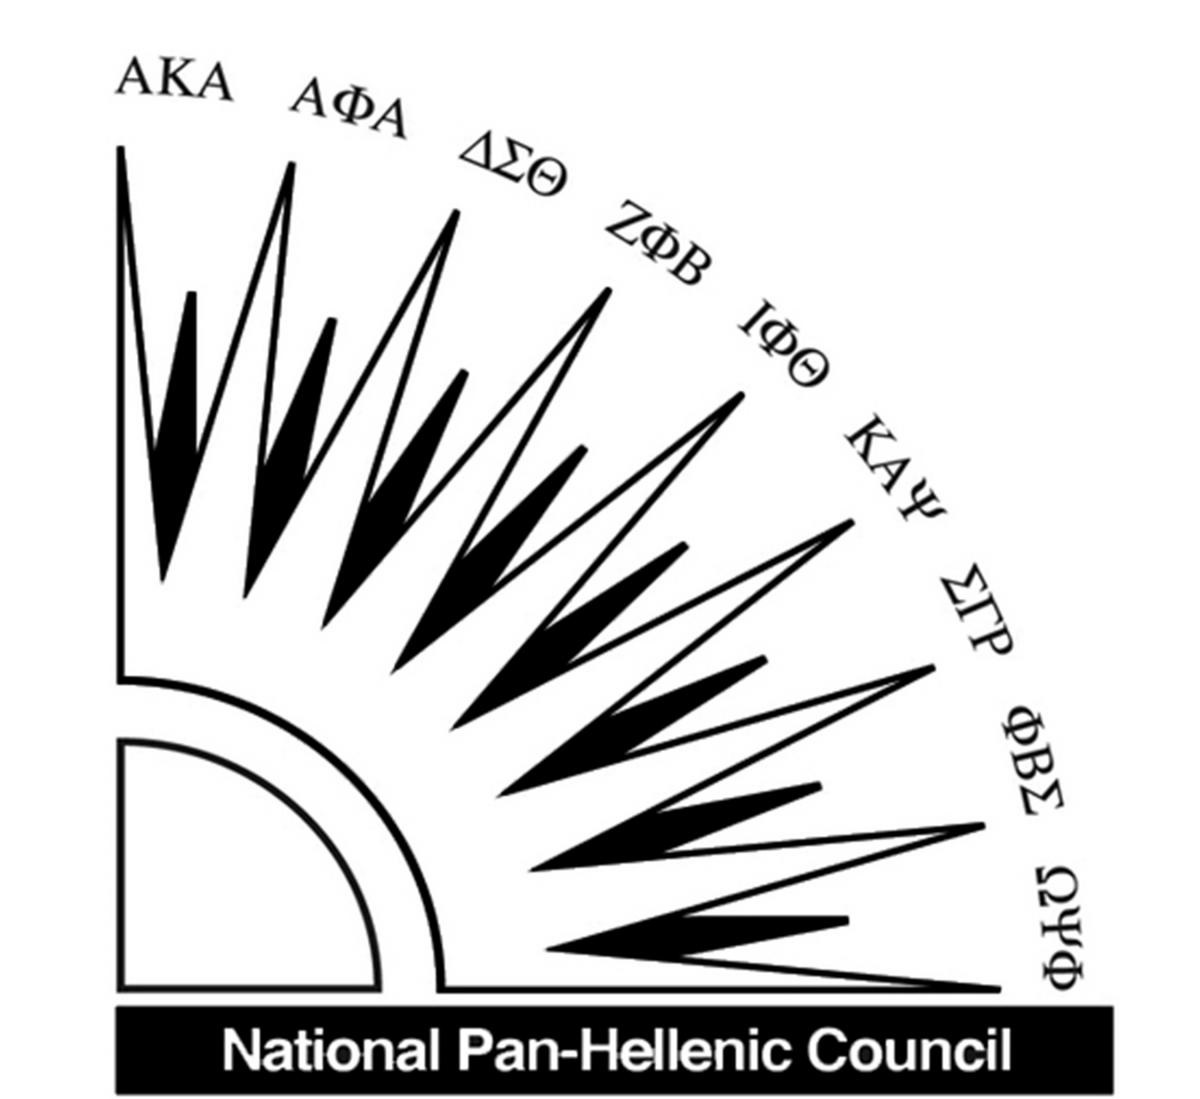 National Pan-Hellenic Council Issues Joint Statement in Response to the Racist Incident at American University